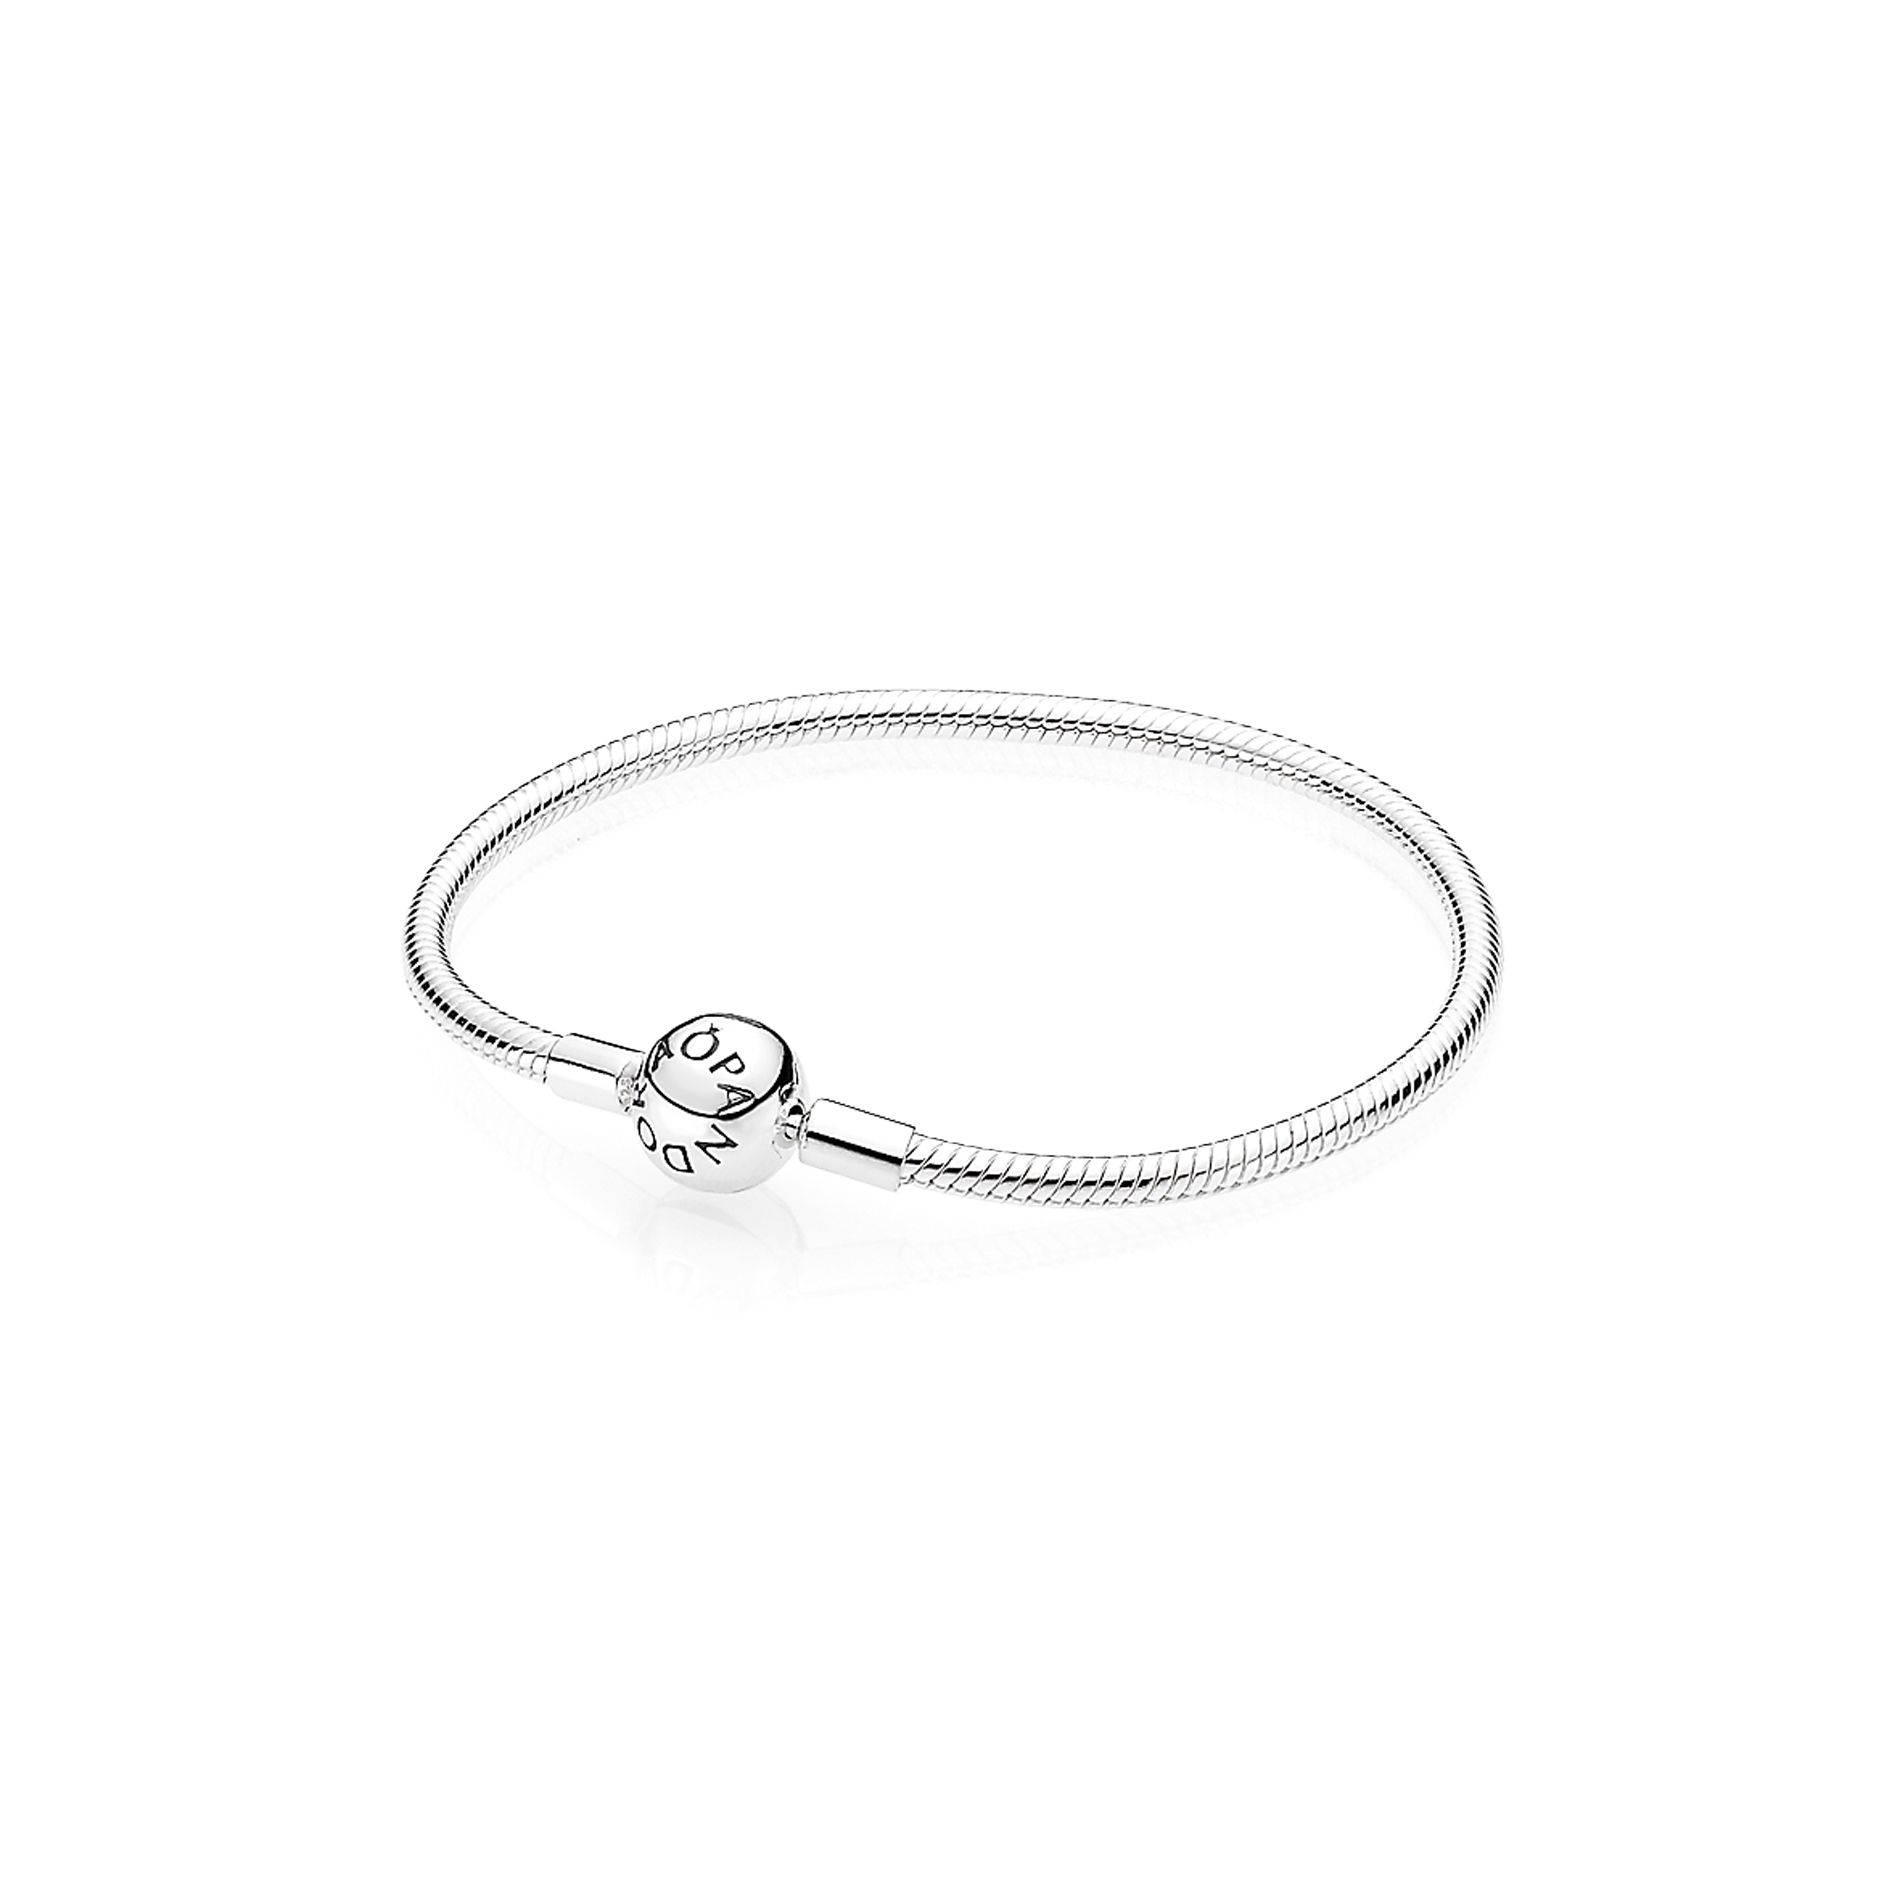 bracelet pandora meaningsuperior meaning princess gear love sier thread superior sterling outlet p quality charm ring beads dfhxaujj charms